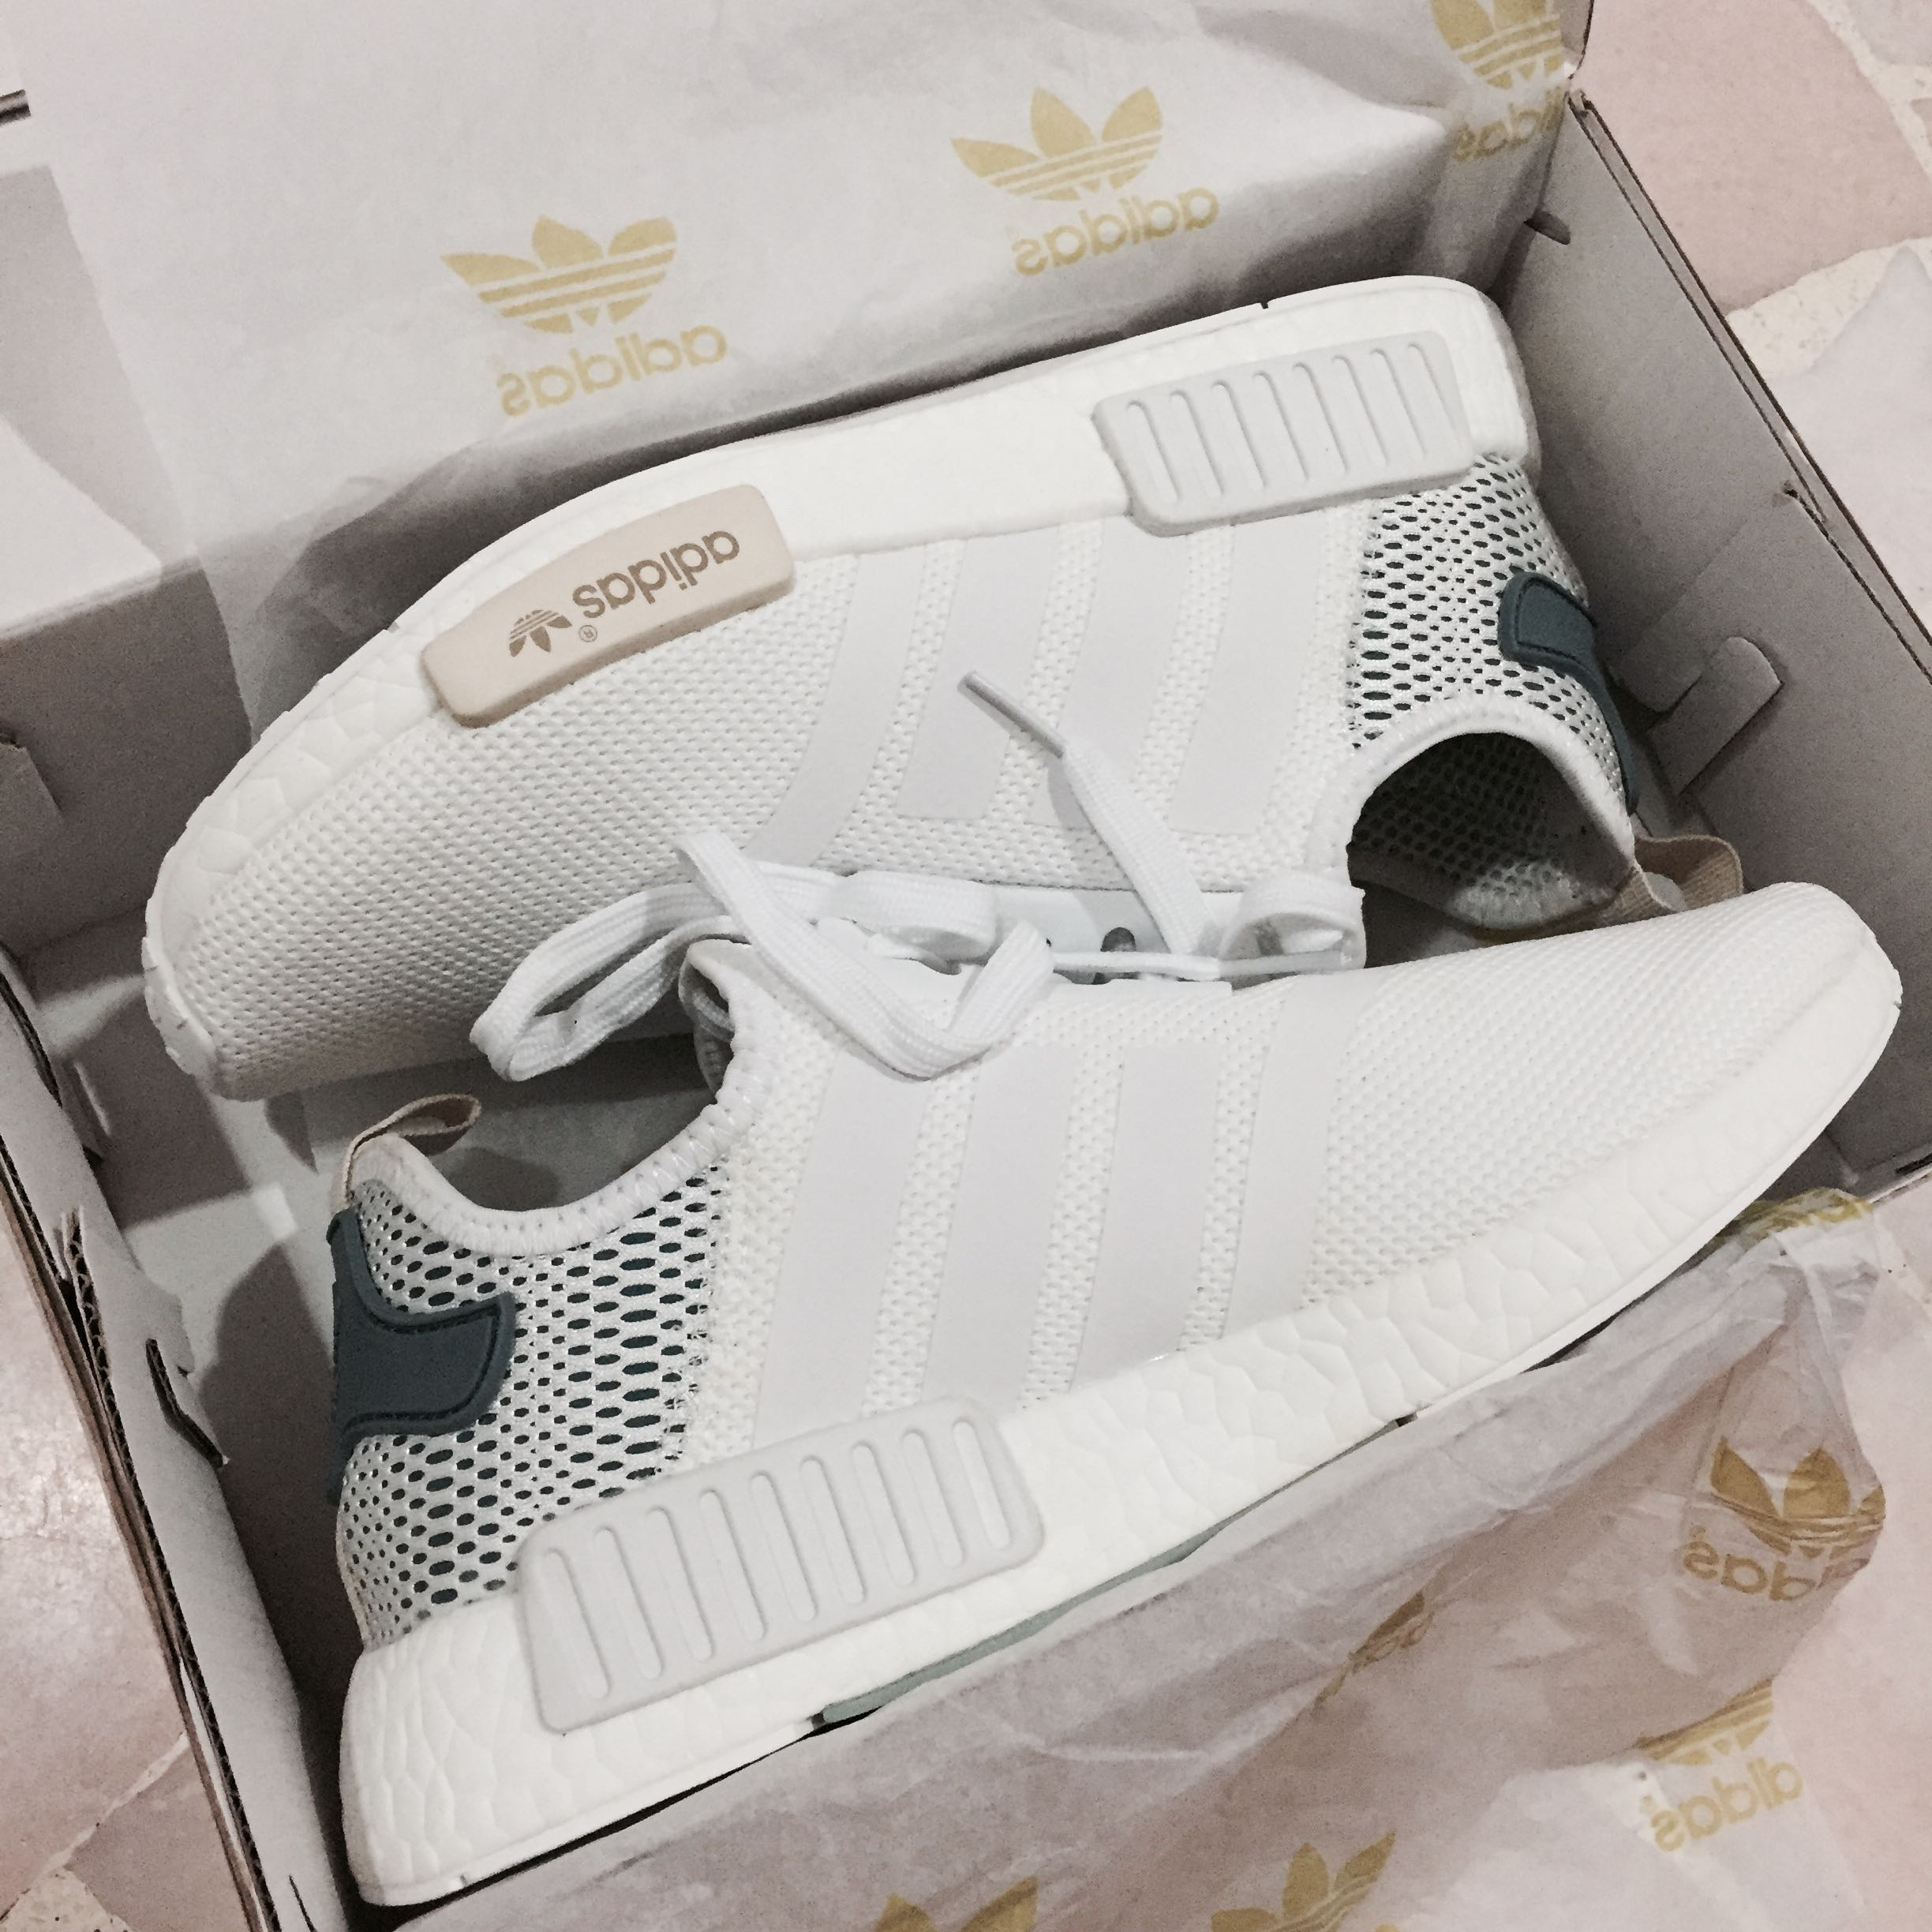 4560a87ecf301 promo  adidas NMD runner PK white x tactile green sneakers